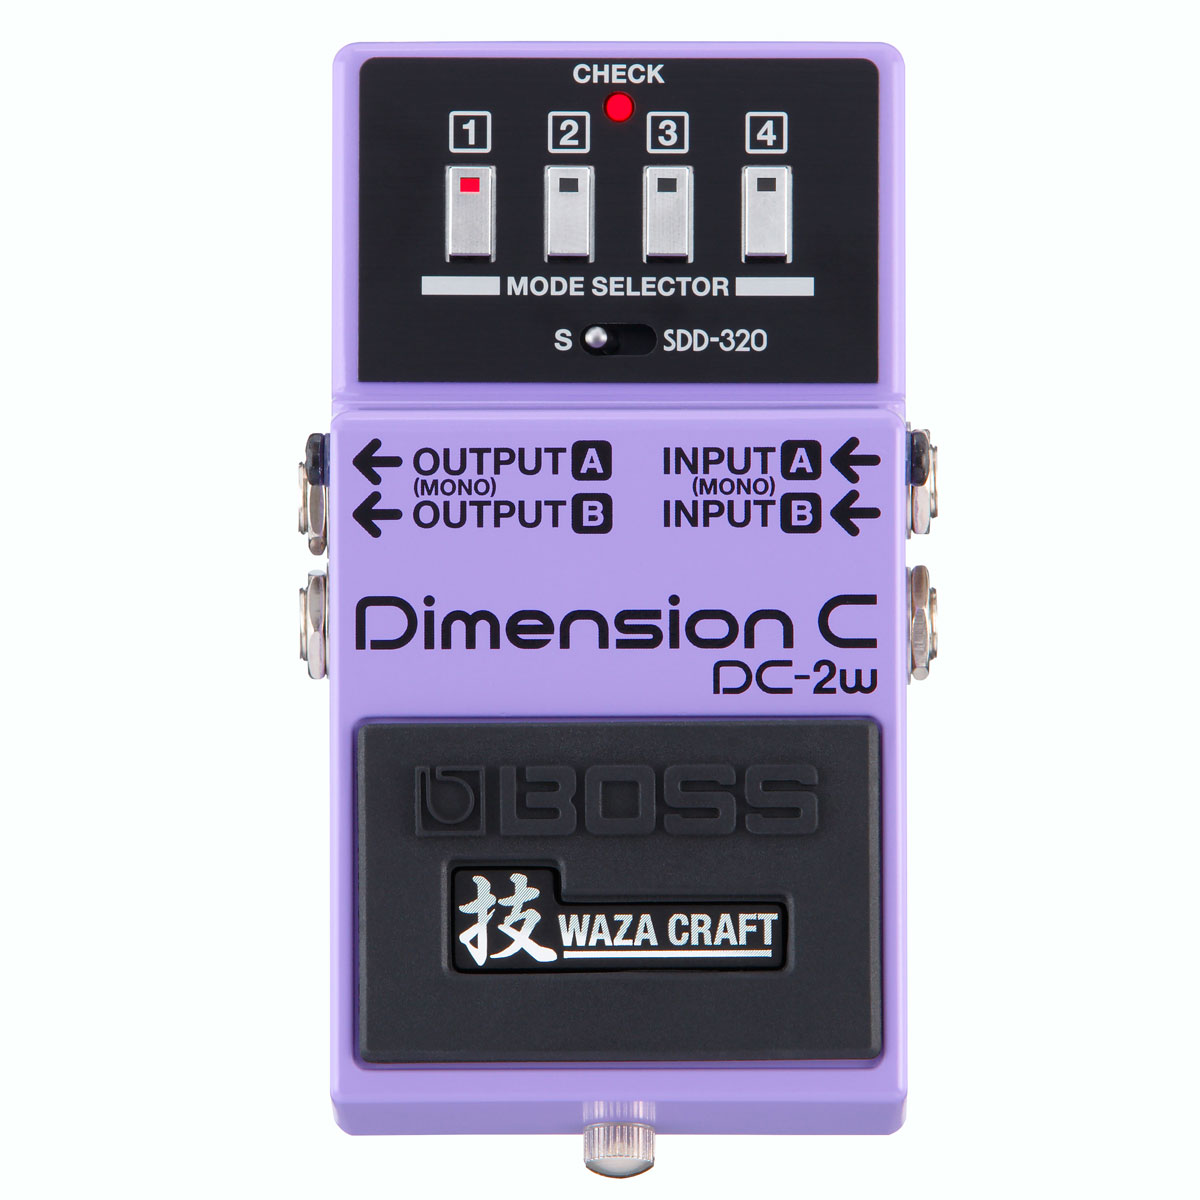 BOSS / DC-2W Dimension C MADE IN JAPAN 技 Waza Craft 日本製 【横浜店】